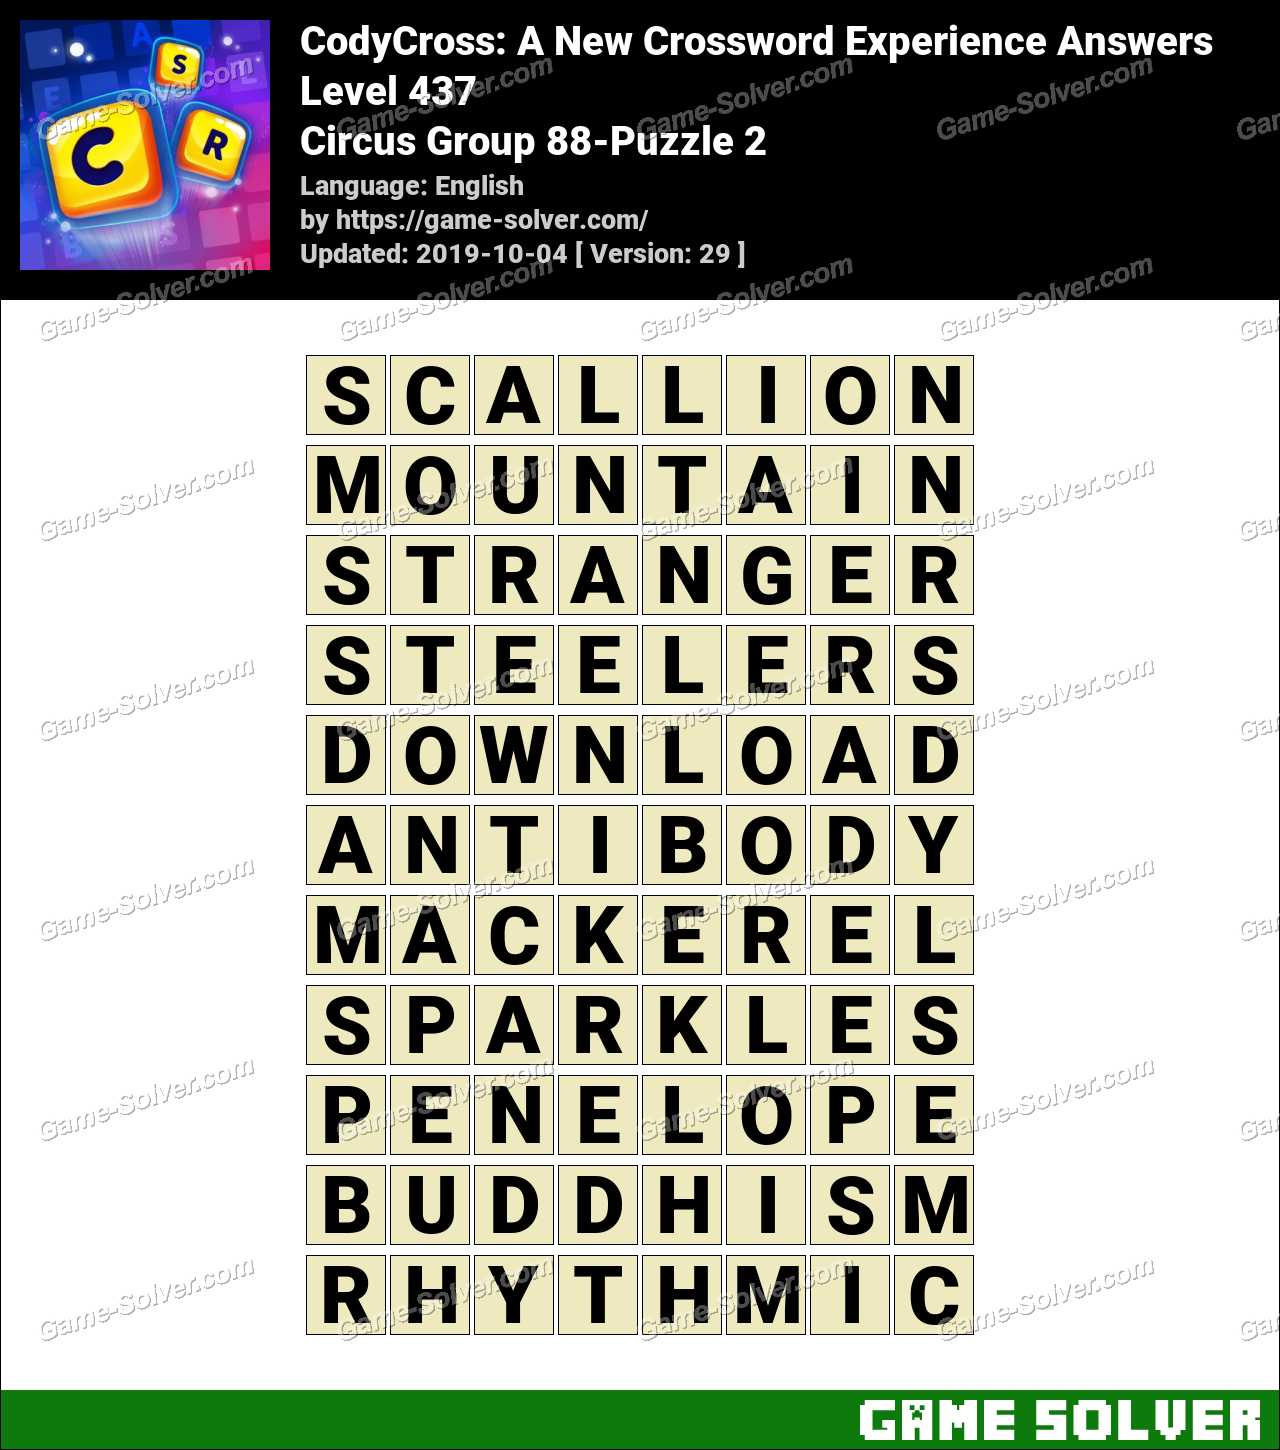 CodyCross Circus Group 88-Puzzle 2 Answers